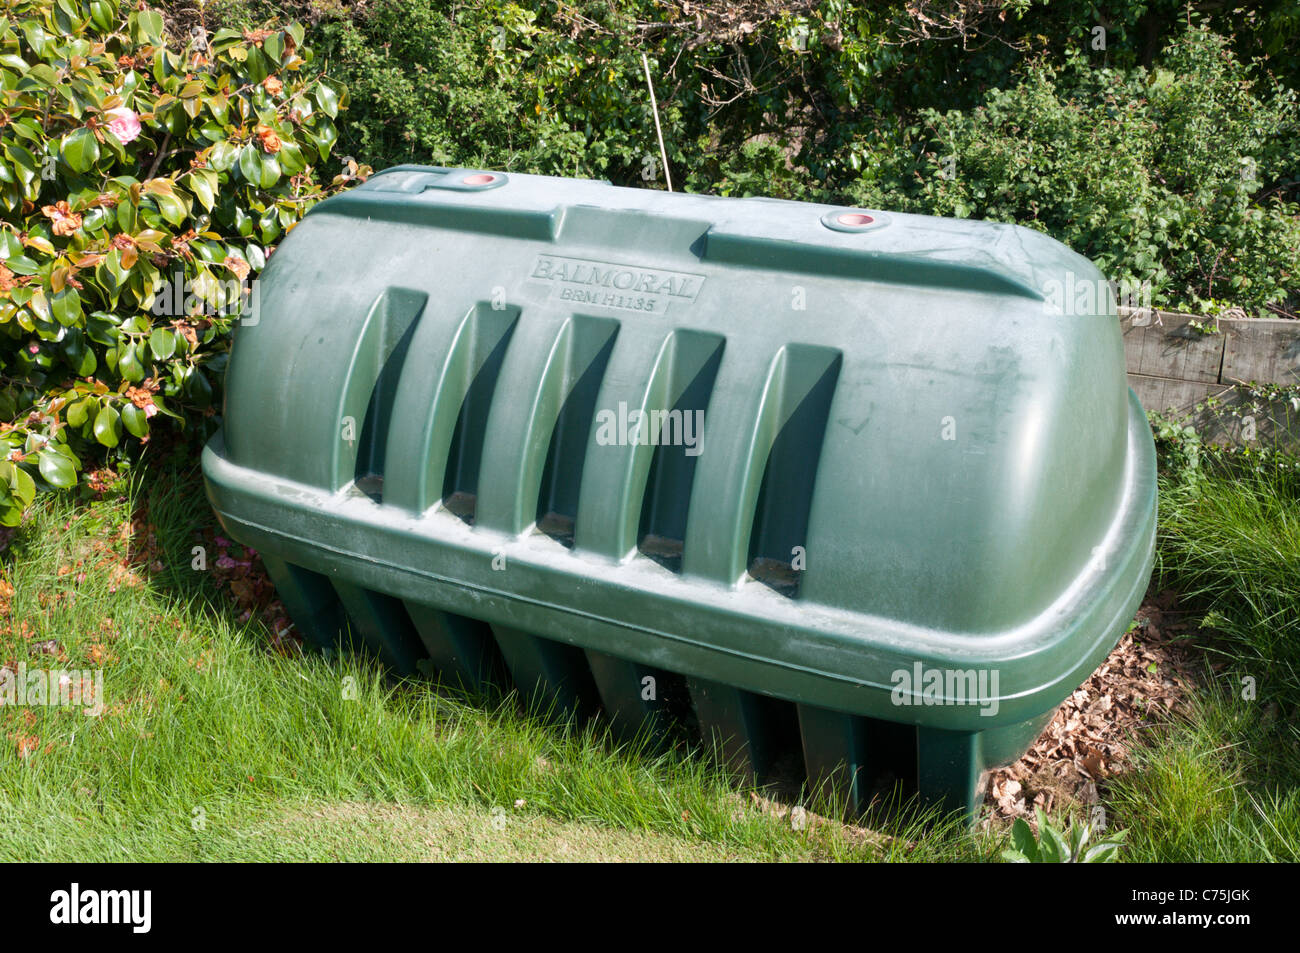 A central heating oil tank in a domestic garden Stock Photo ...